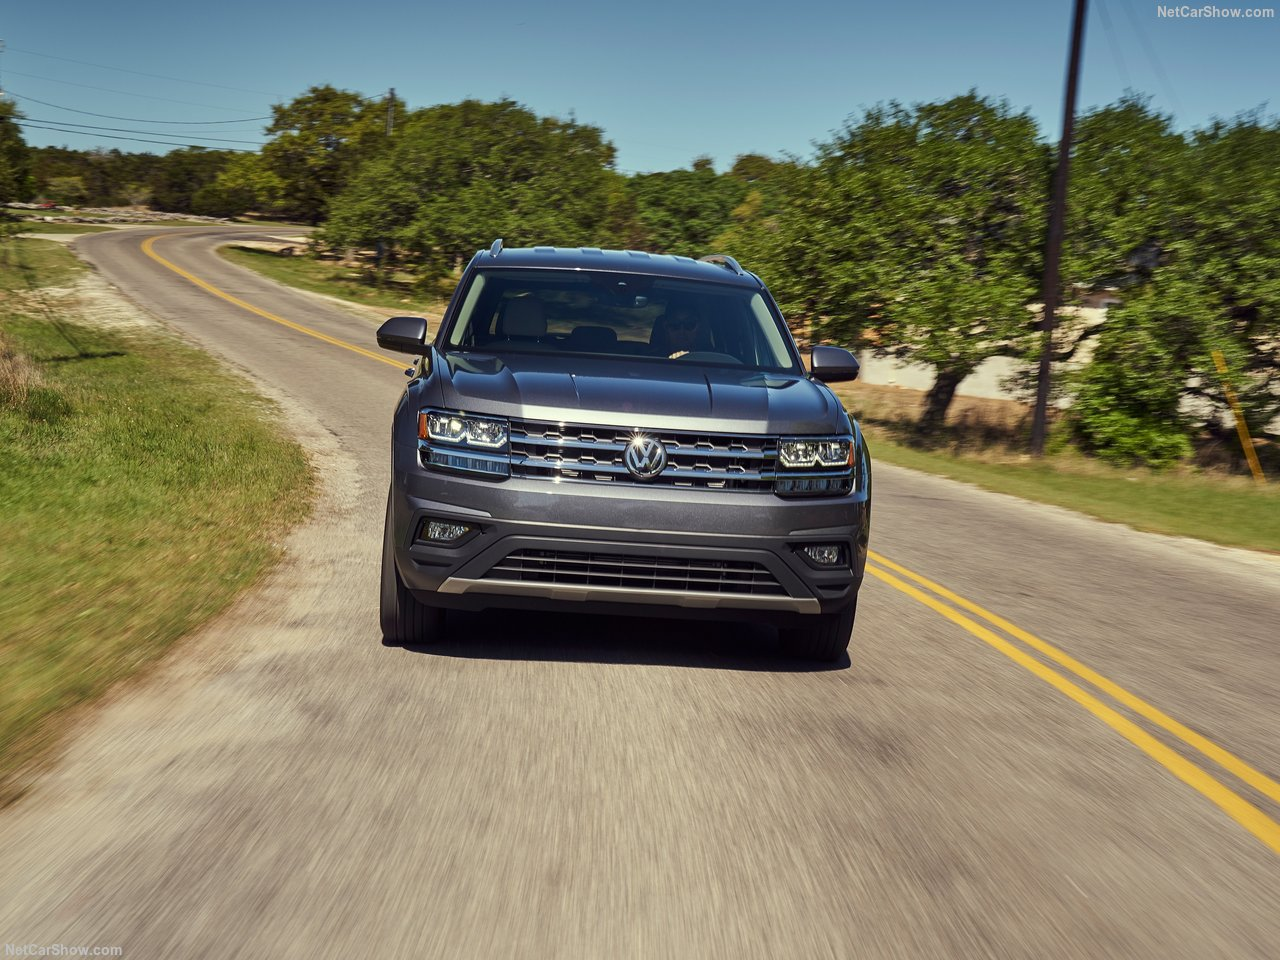 Volkswagen Atlas photo 176419